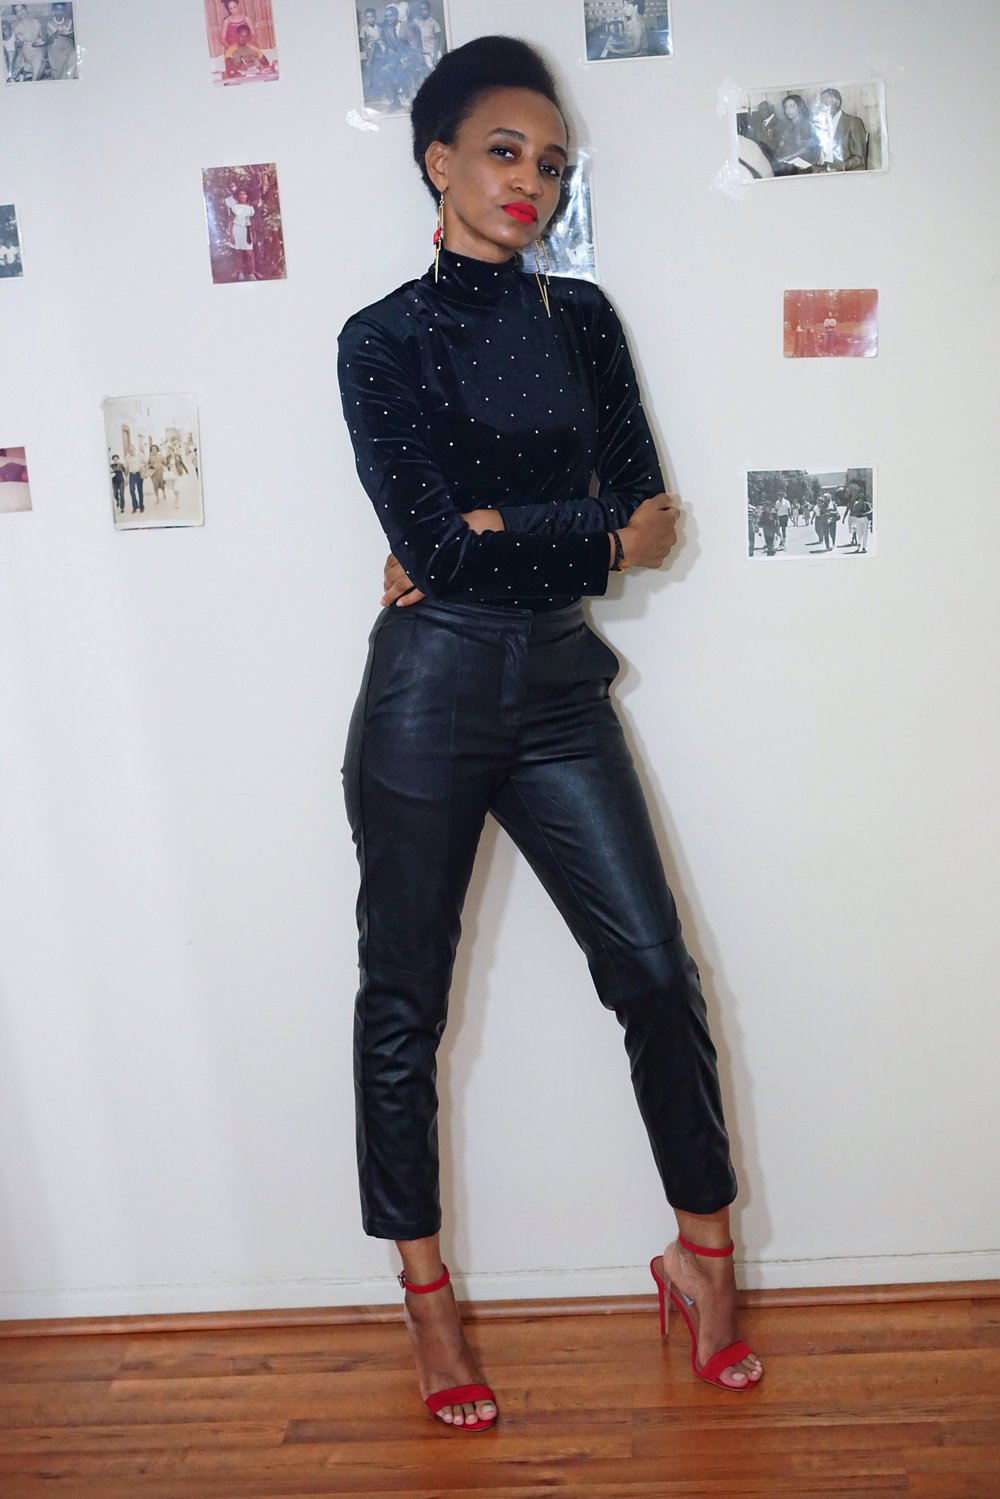 christine_the_style_d_affaire_h&m_turtleneck_sweater_faux_leather_pants_Smashbox_Always_On_Matte_Liquid_Lipstick_earrings_rouge.JPG